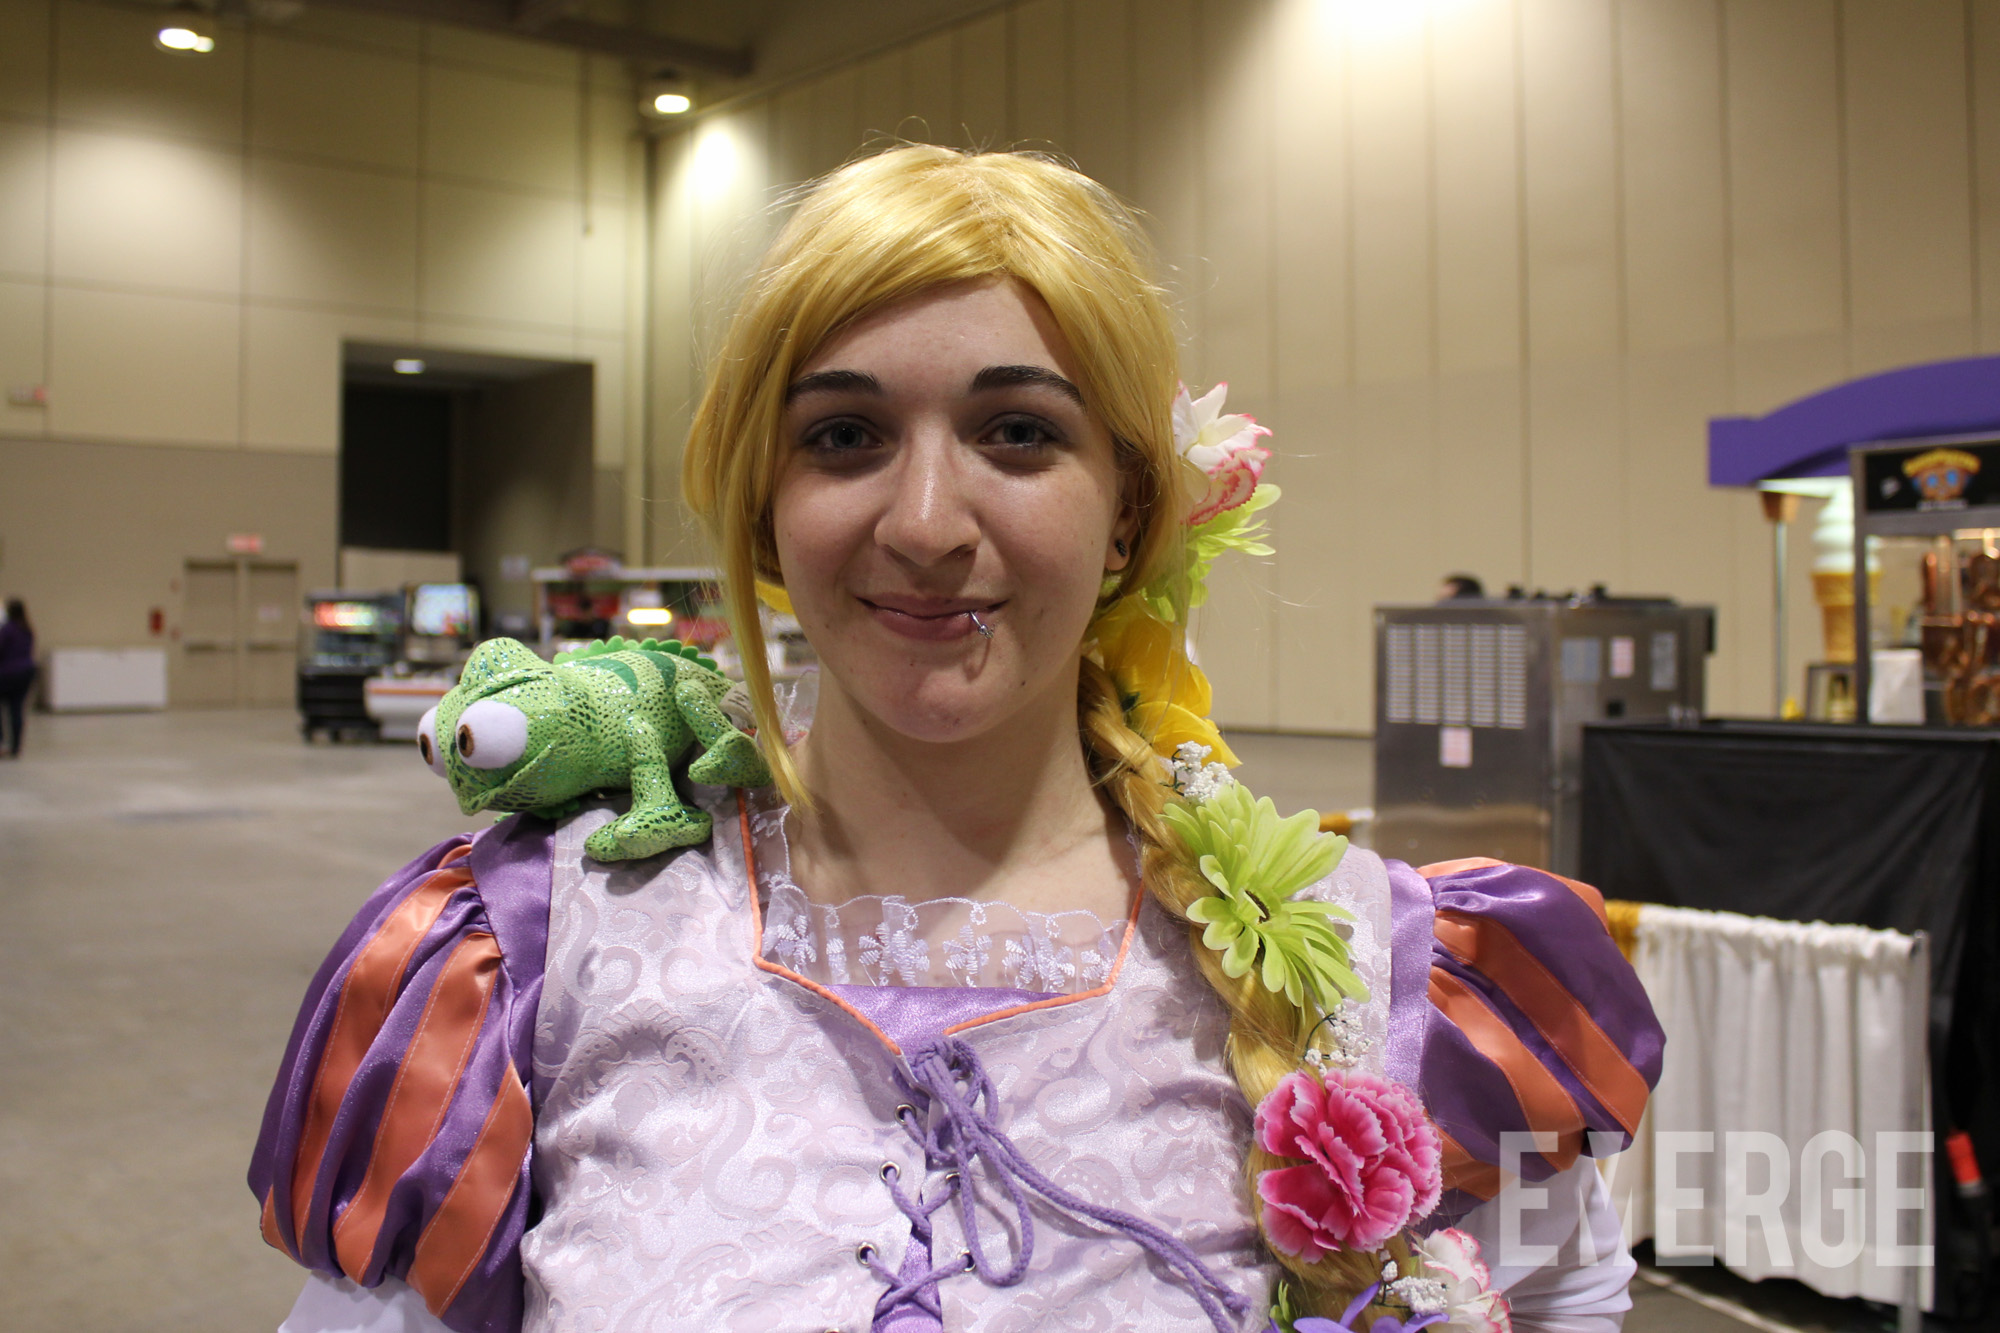 Rapunzel from Tangled made an appearance as well!